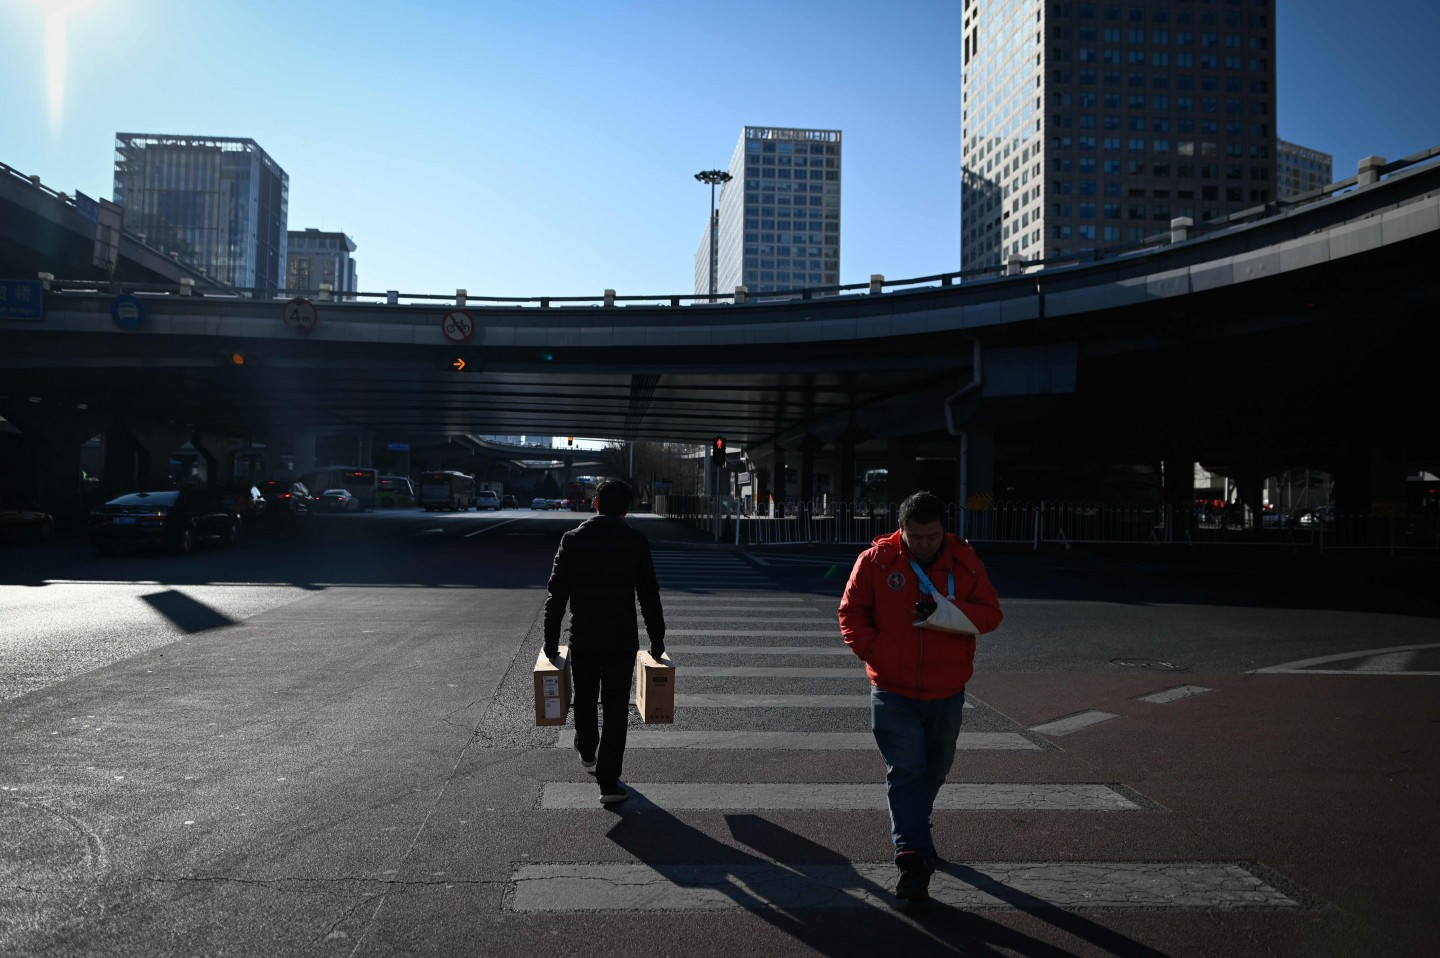 A serious implementation of the agreement will bring forth huge benefits for China and deepen China's reform and opening up. The photo shows pedestrians crossing a street at a Central Business District in Beijing on 14 January 2020. (Wang Zhao/AFP)